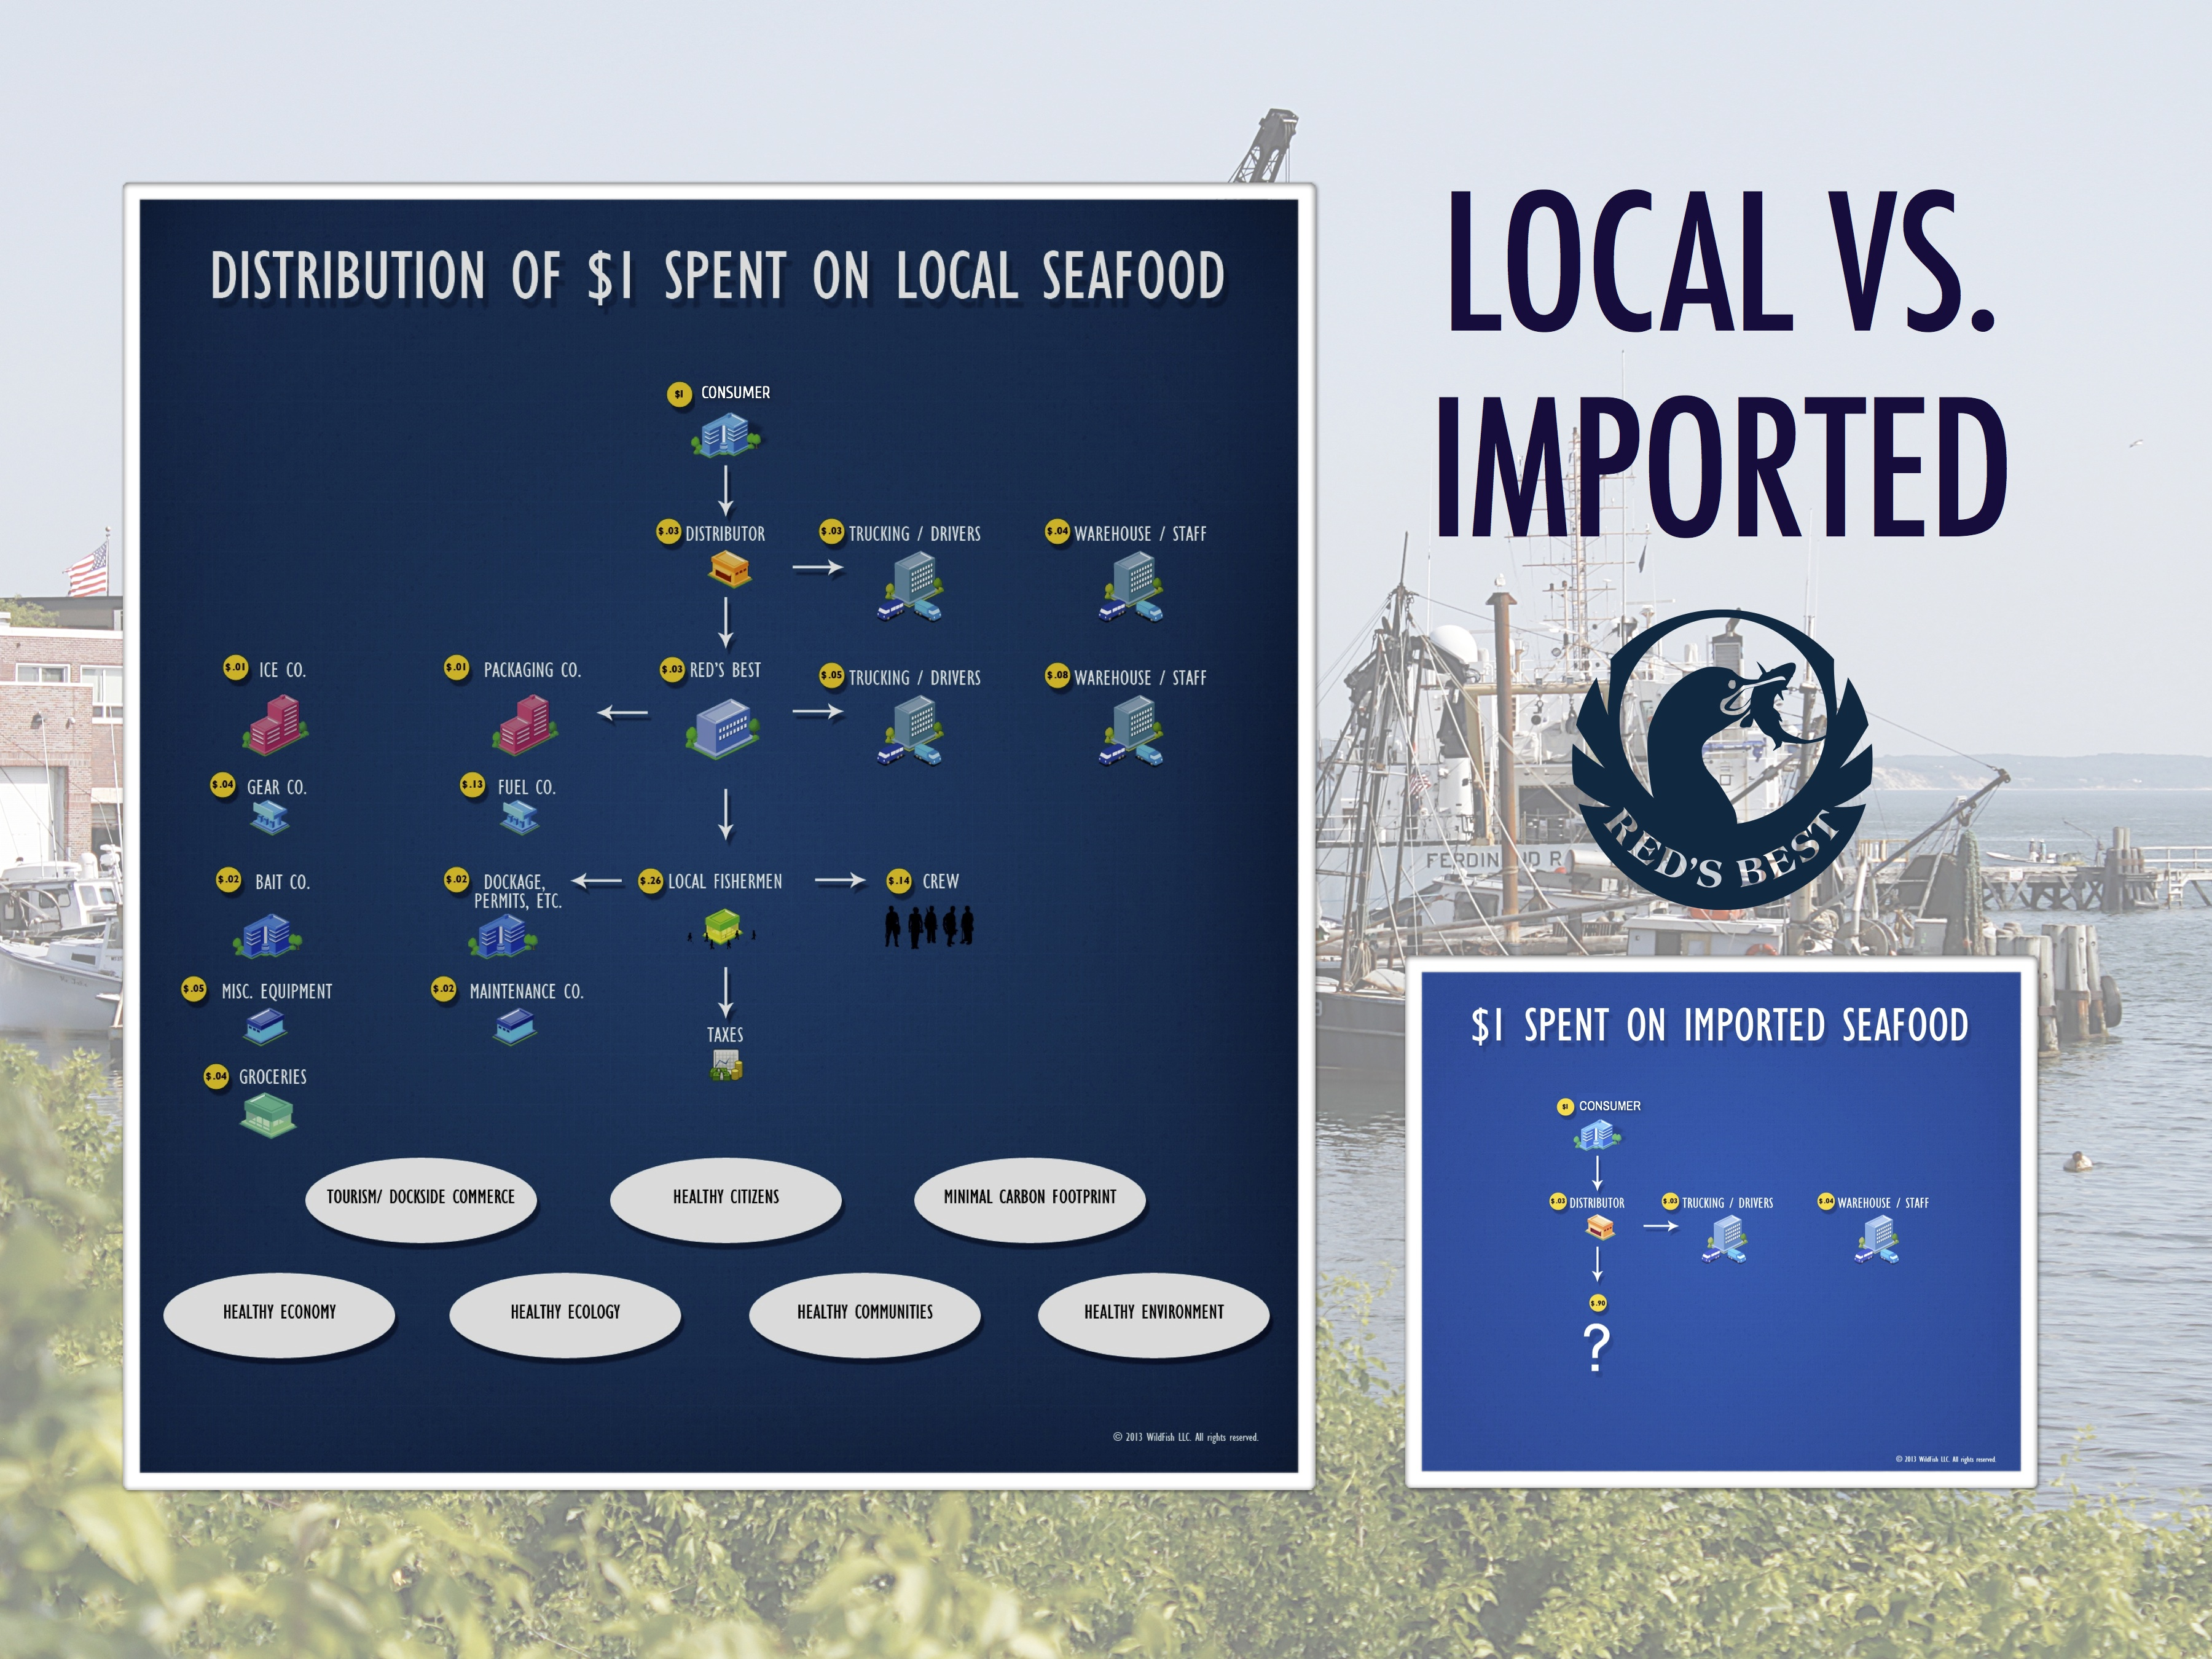 Local vs imported seafood